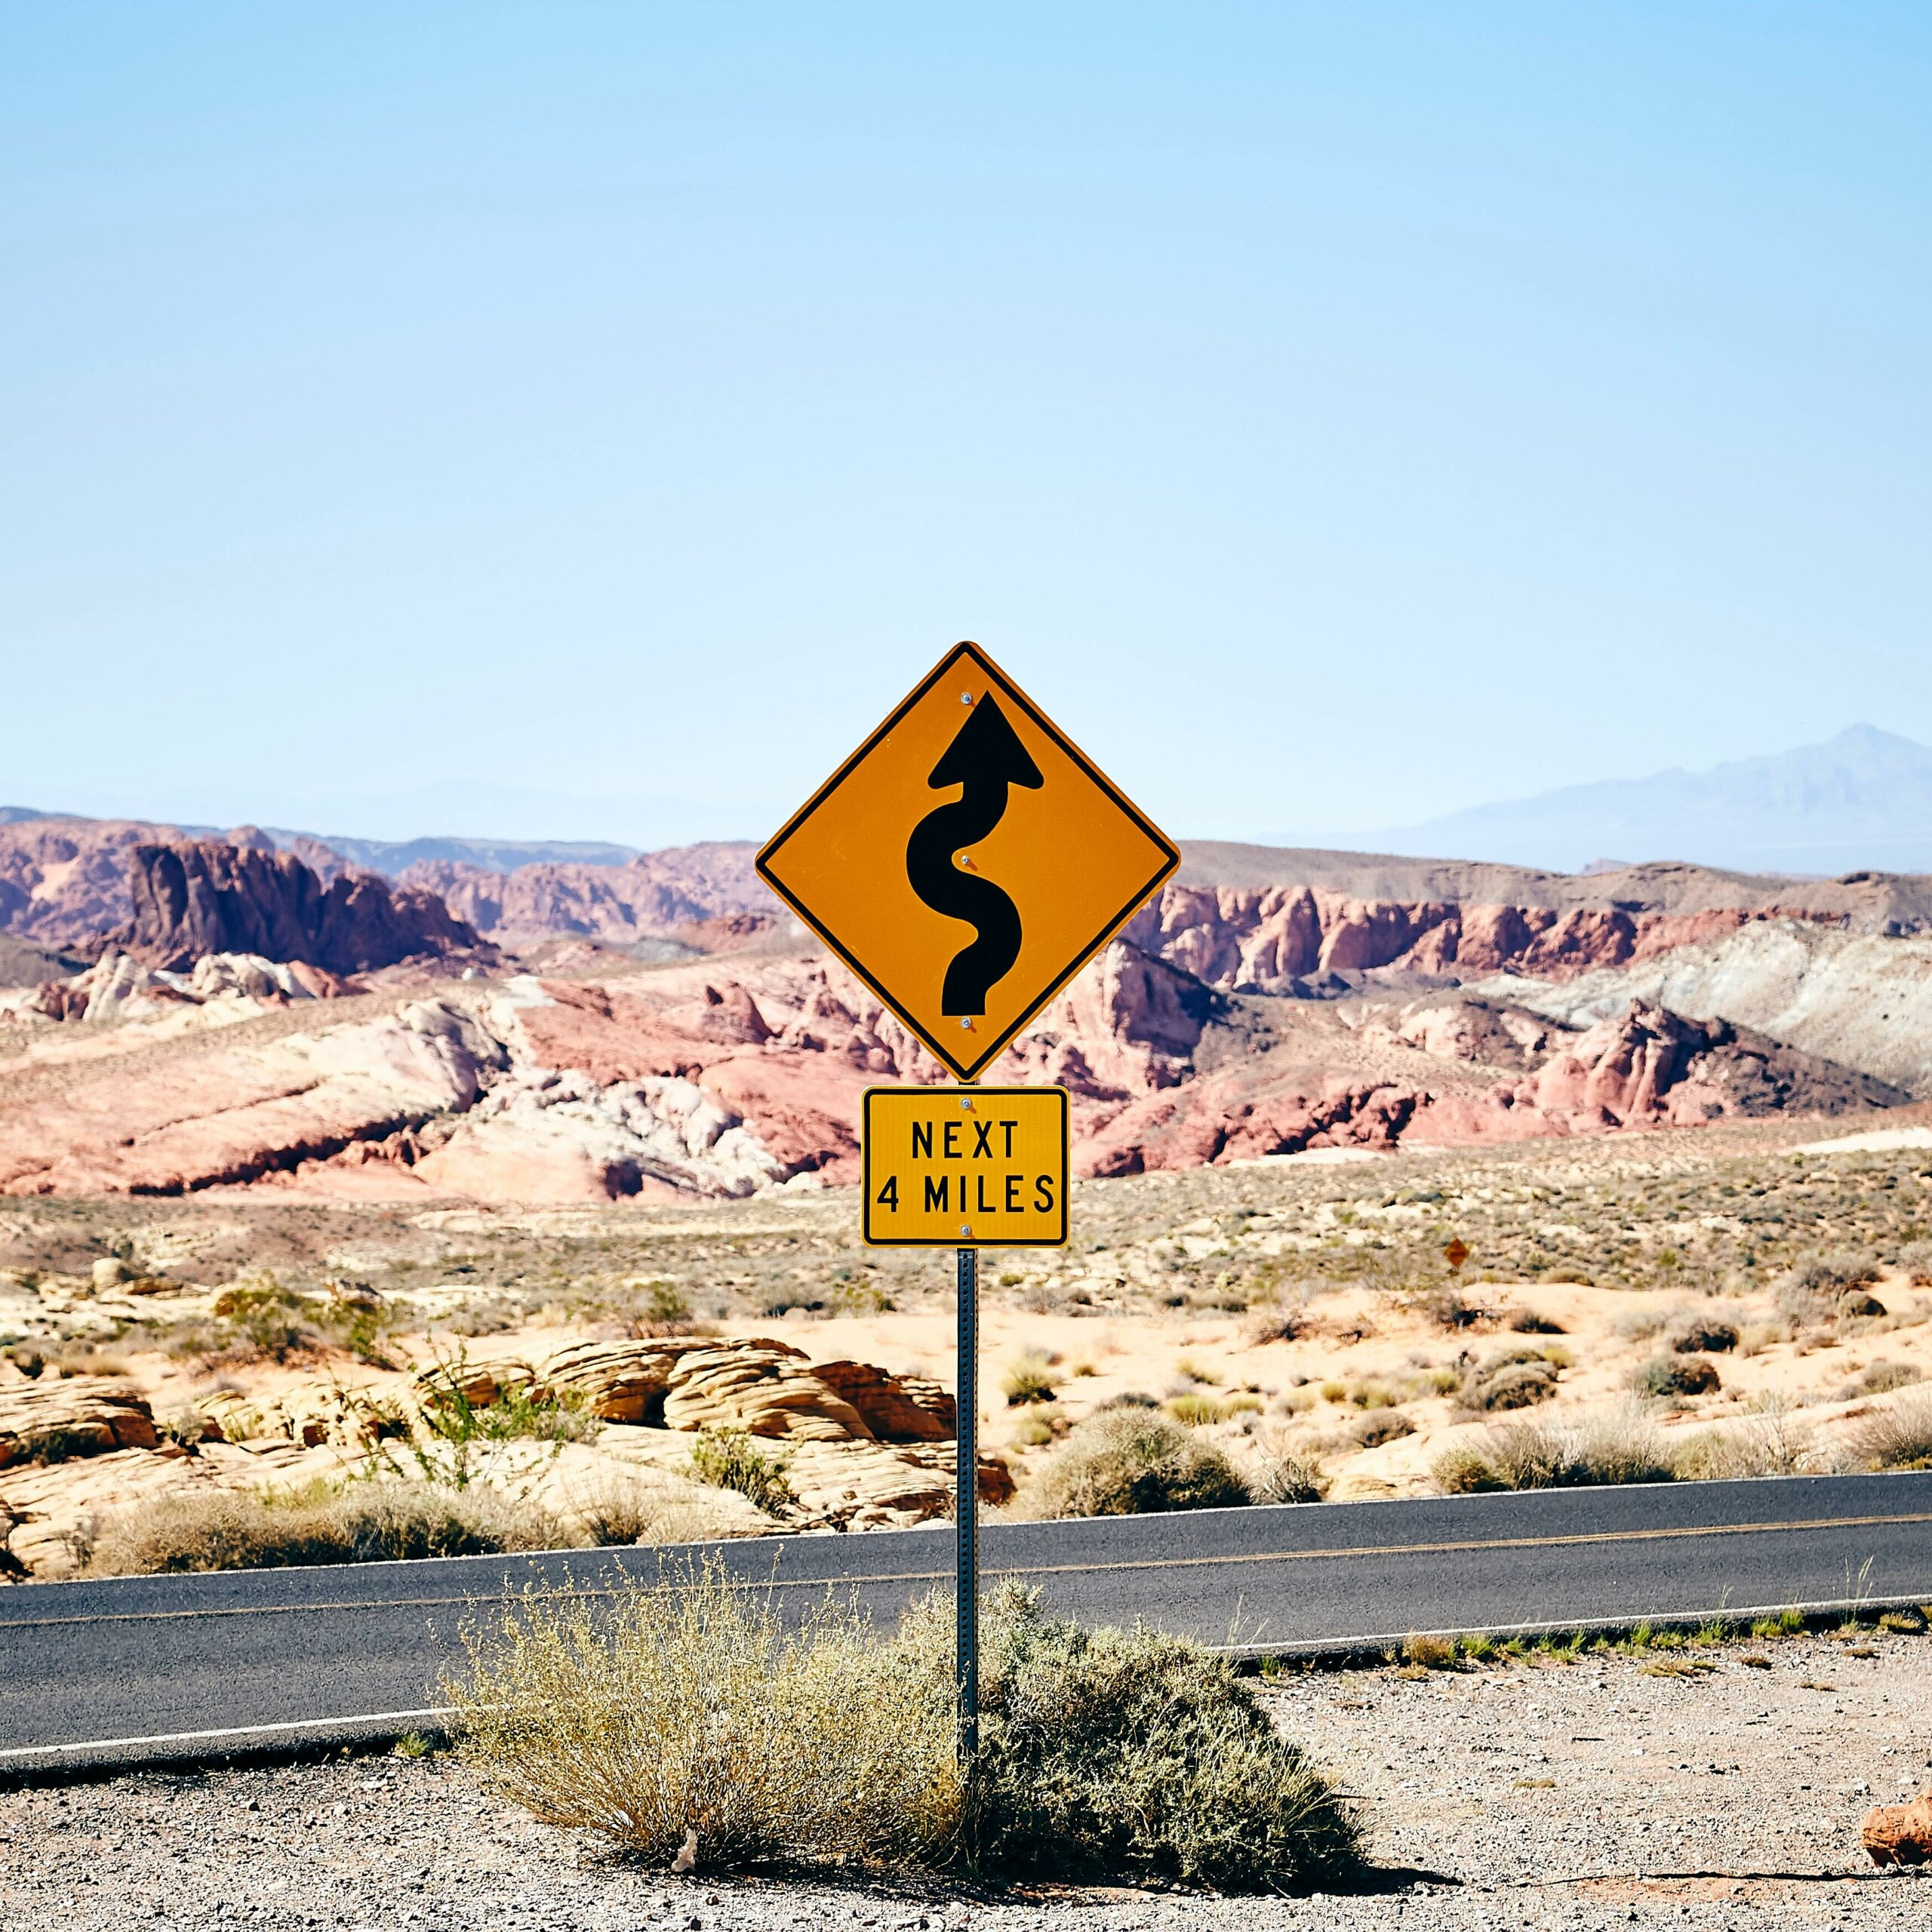 Sign indicated rough road ahead, concept for a view of resilience